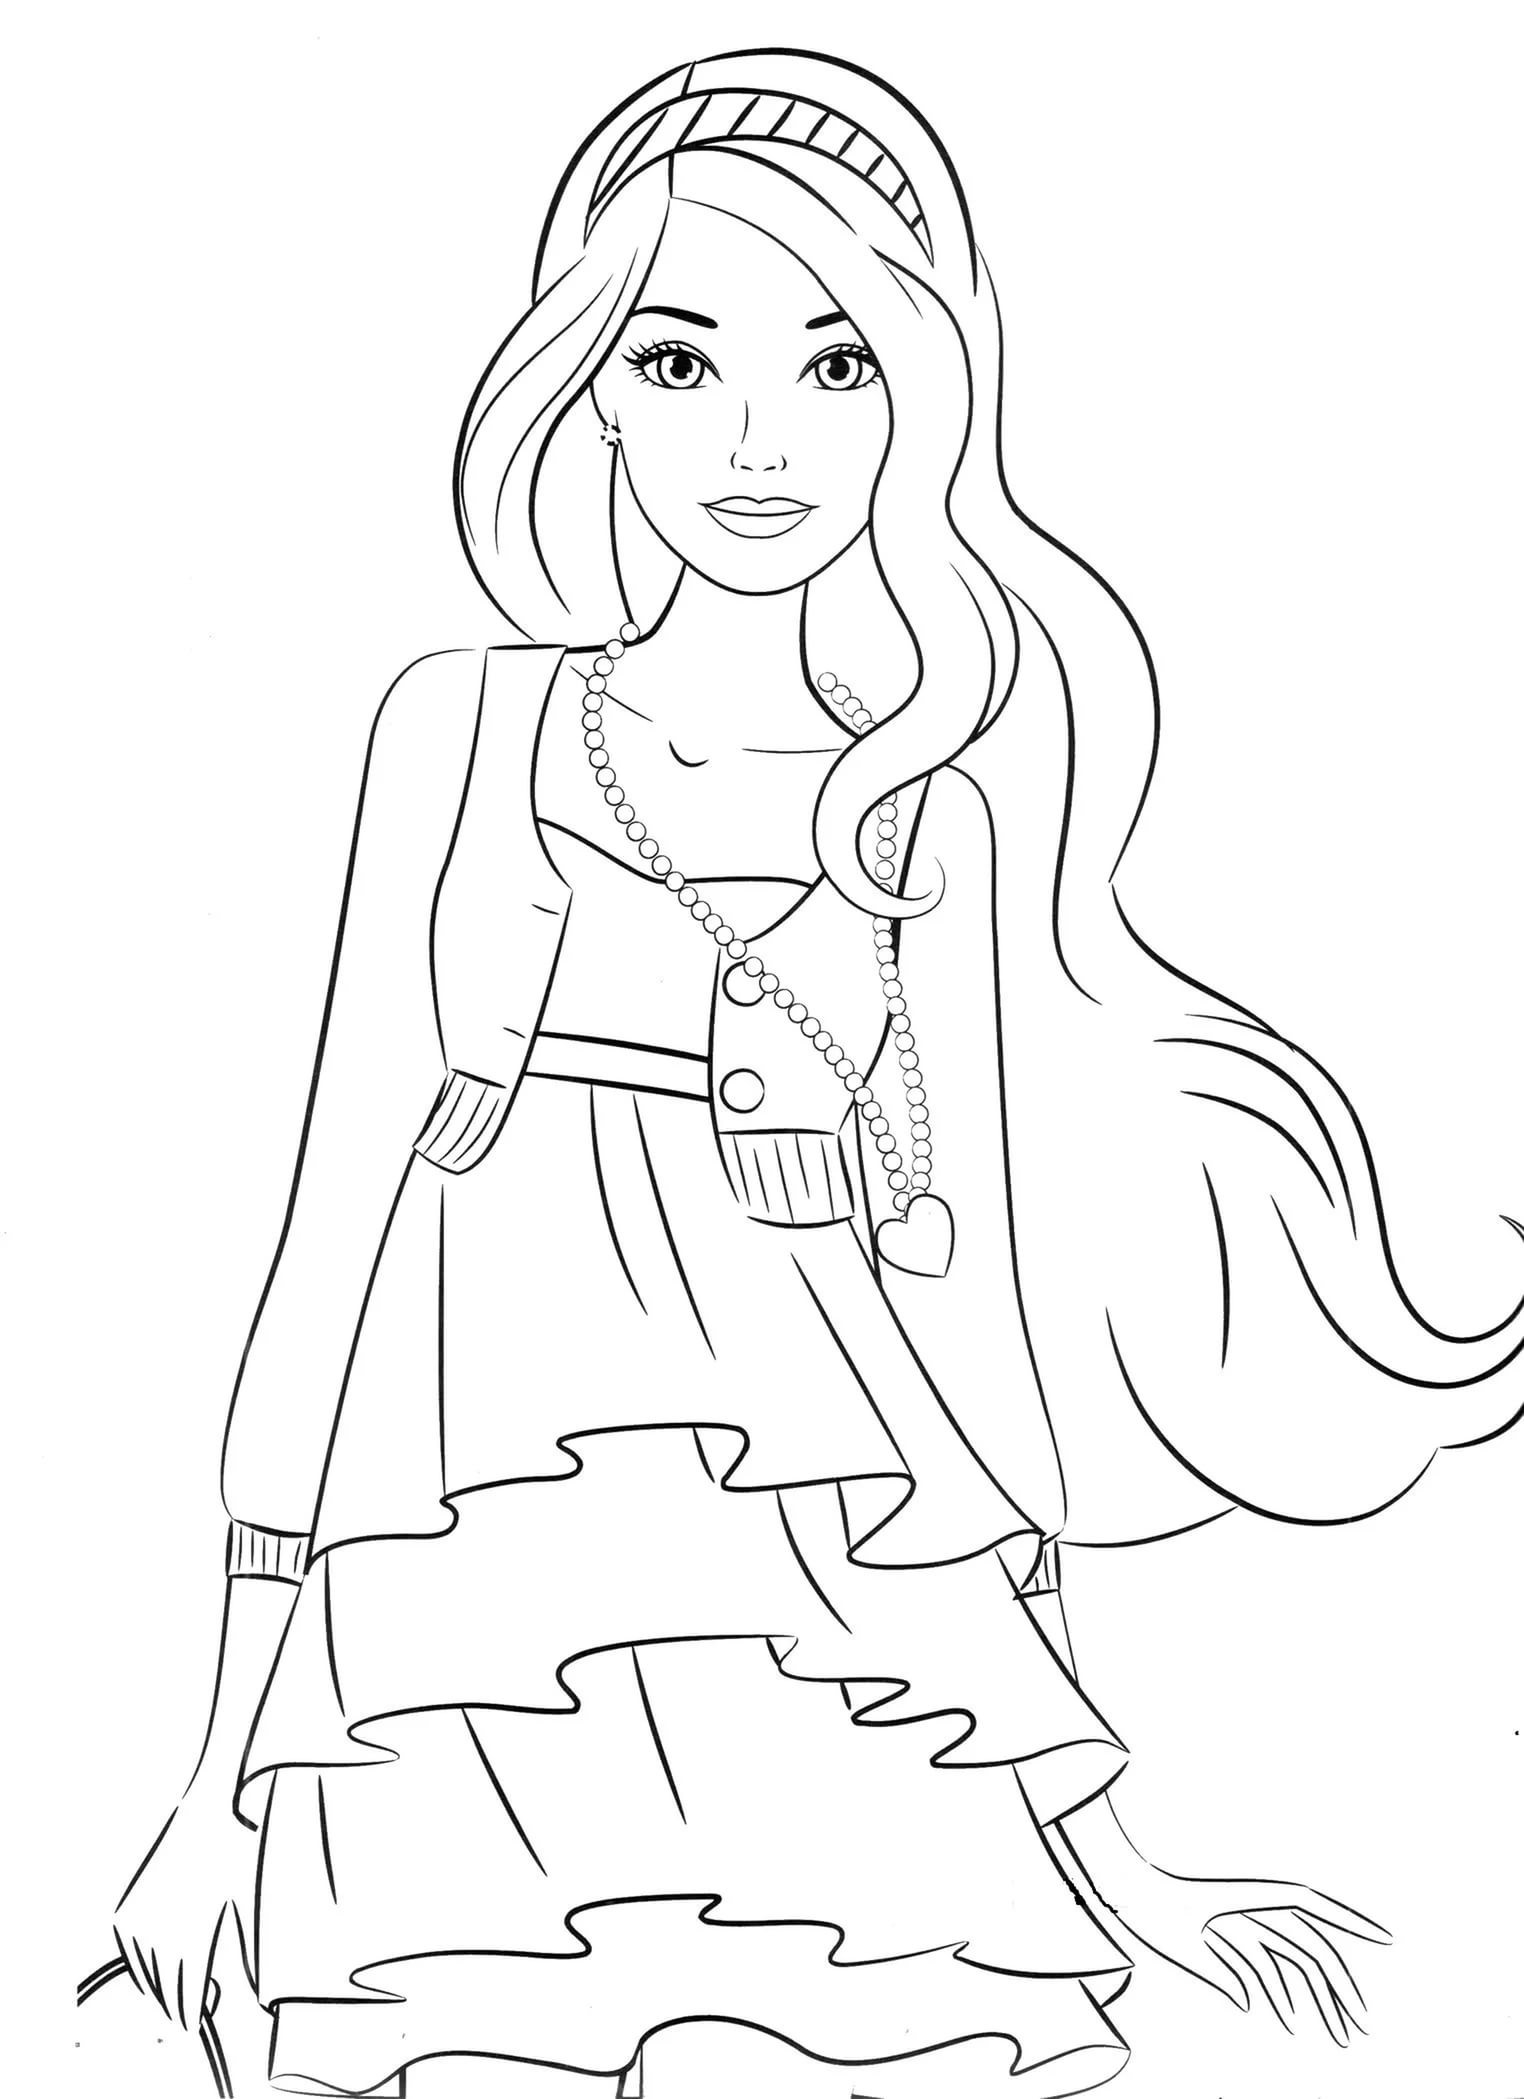 coloring pages 9 year old free printable coloring pages for 9 year olds printable pages old year coloring 9